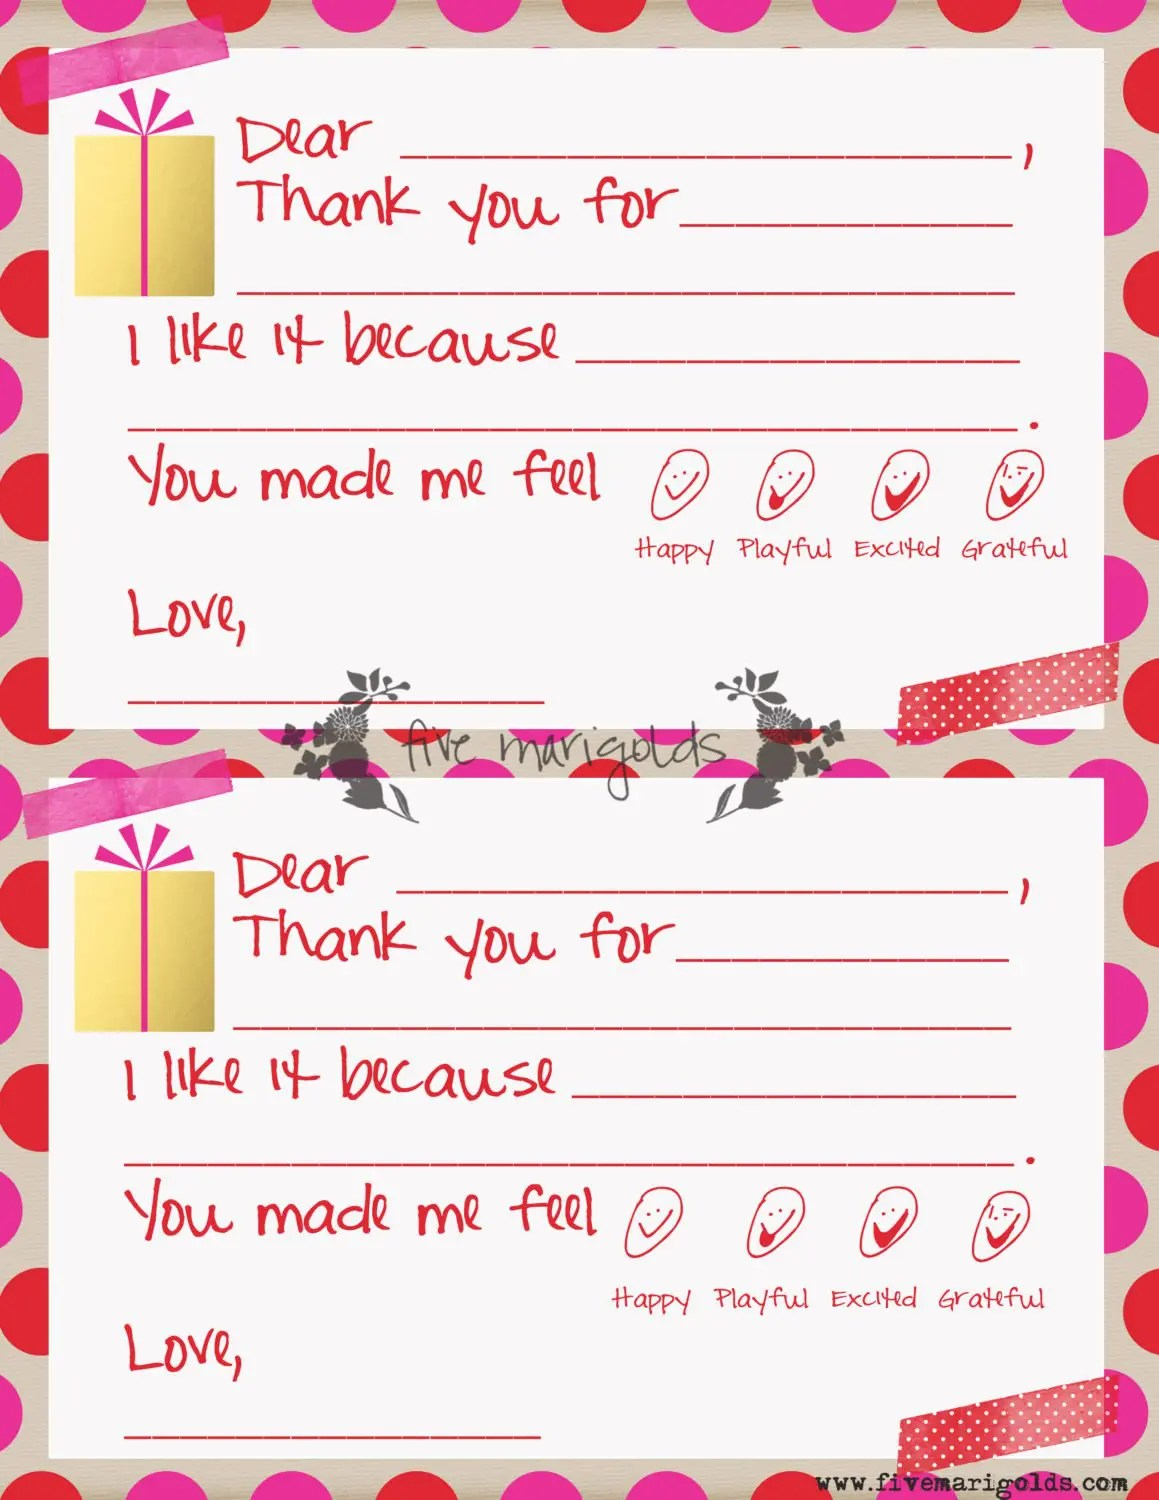 This is an image of Fabulous Free Printable Thank You Notes